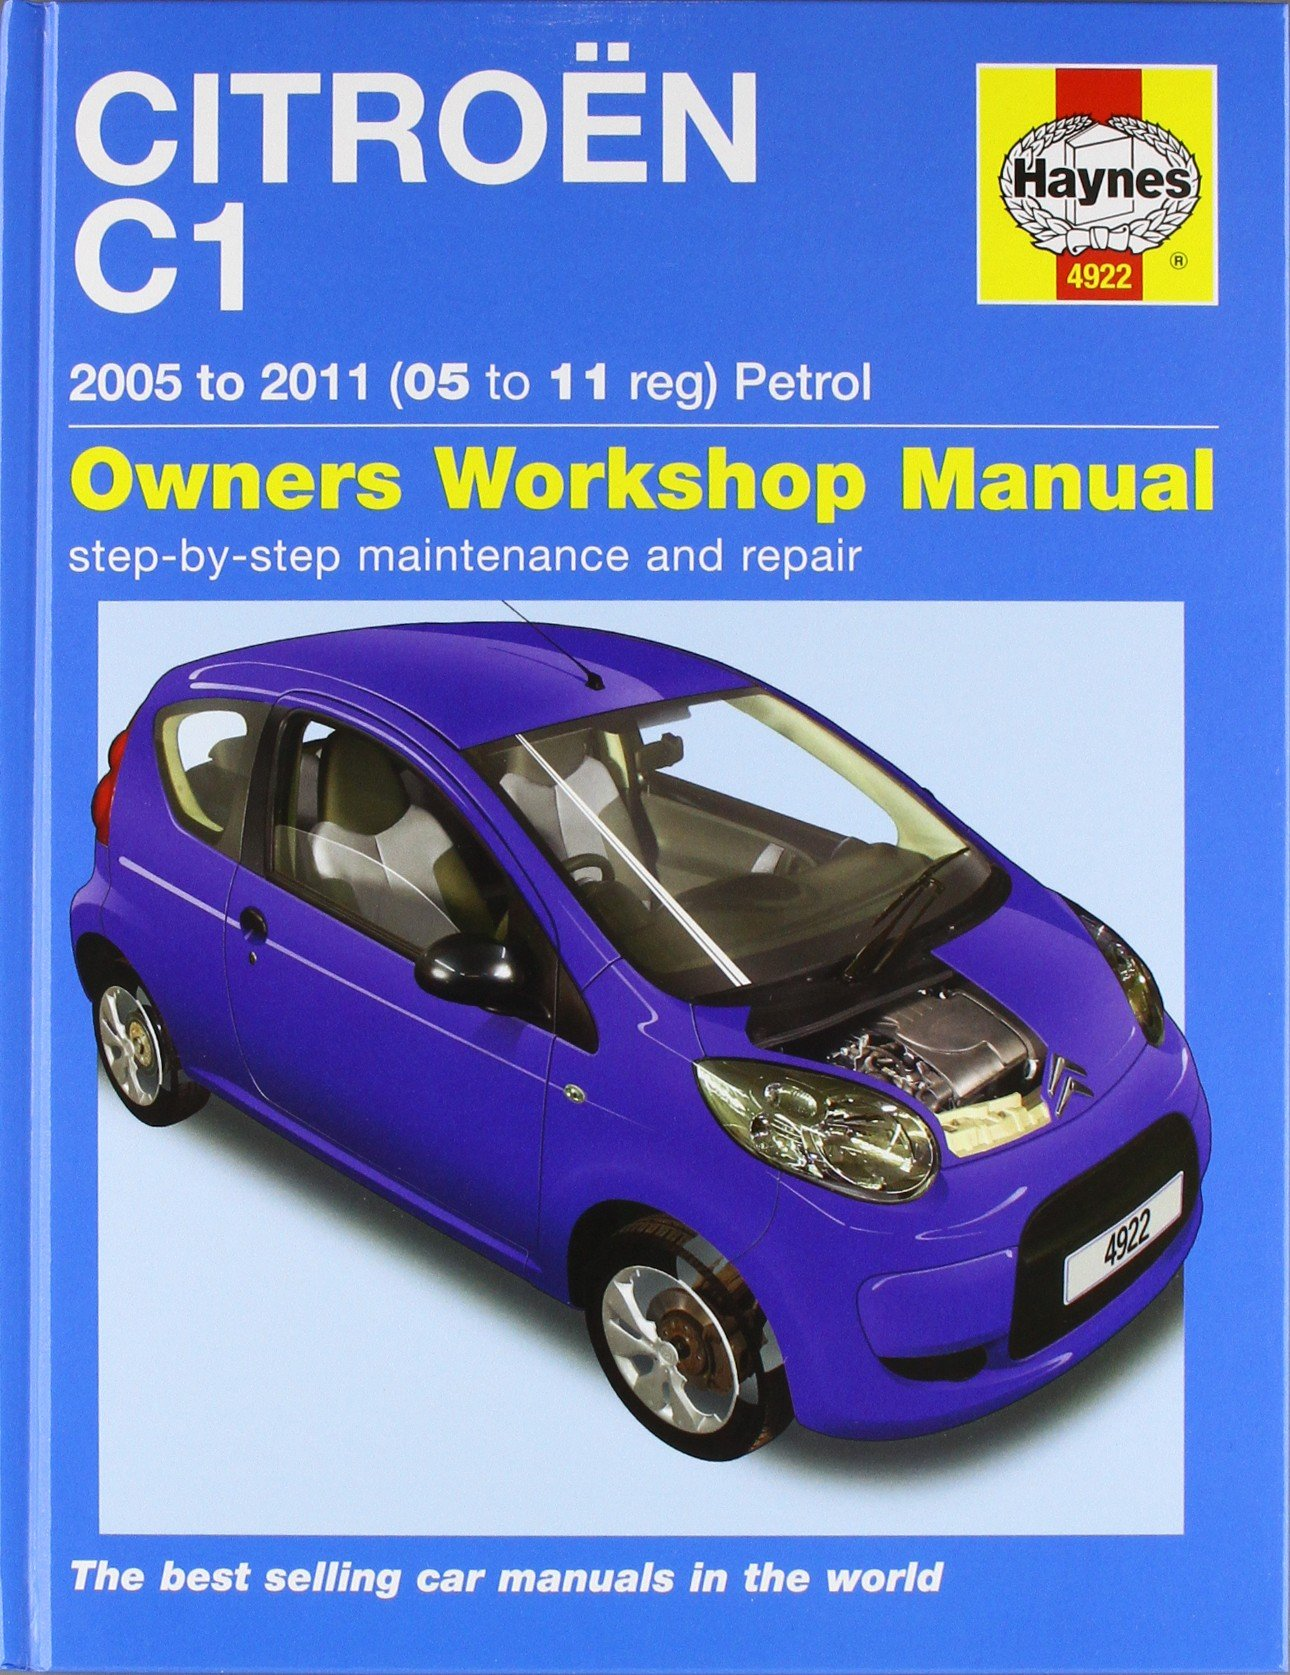 Citroen C1 Petrol (05 - 11) Haynes Repair Manual (Owners Workshop Manual):  Amazon.co.uk: Anon: 9781844259229: Books